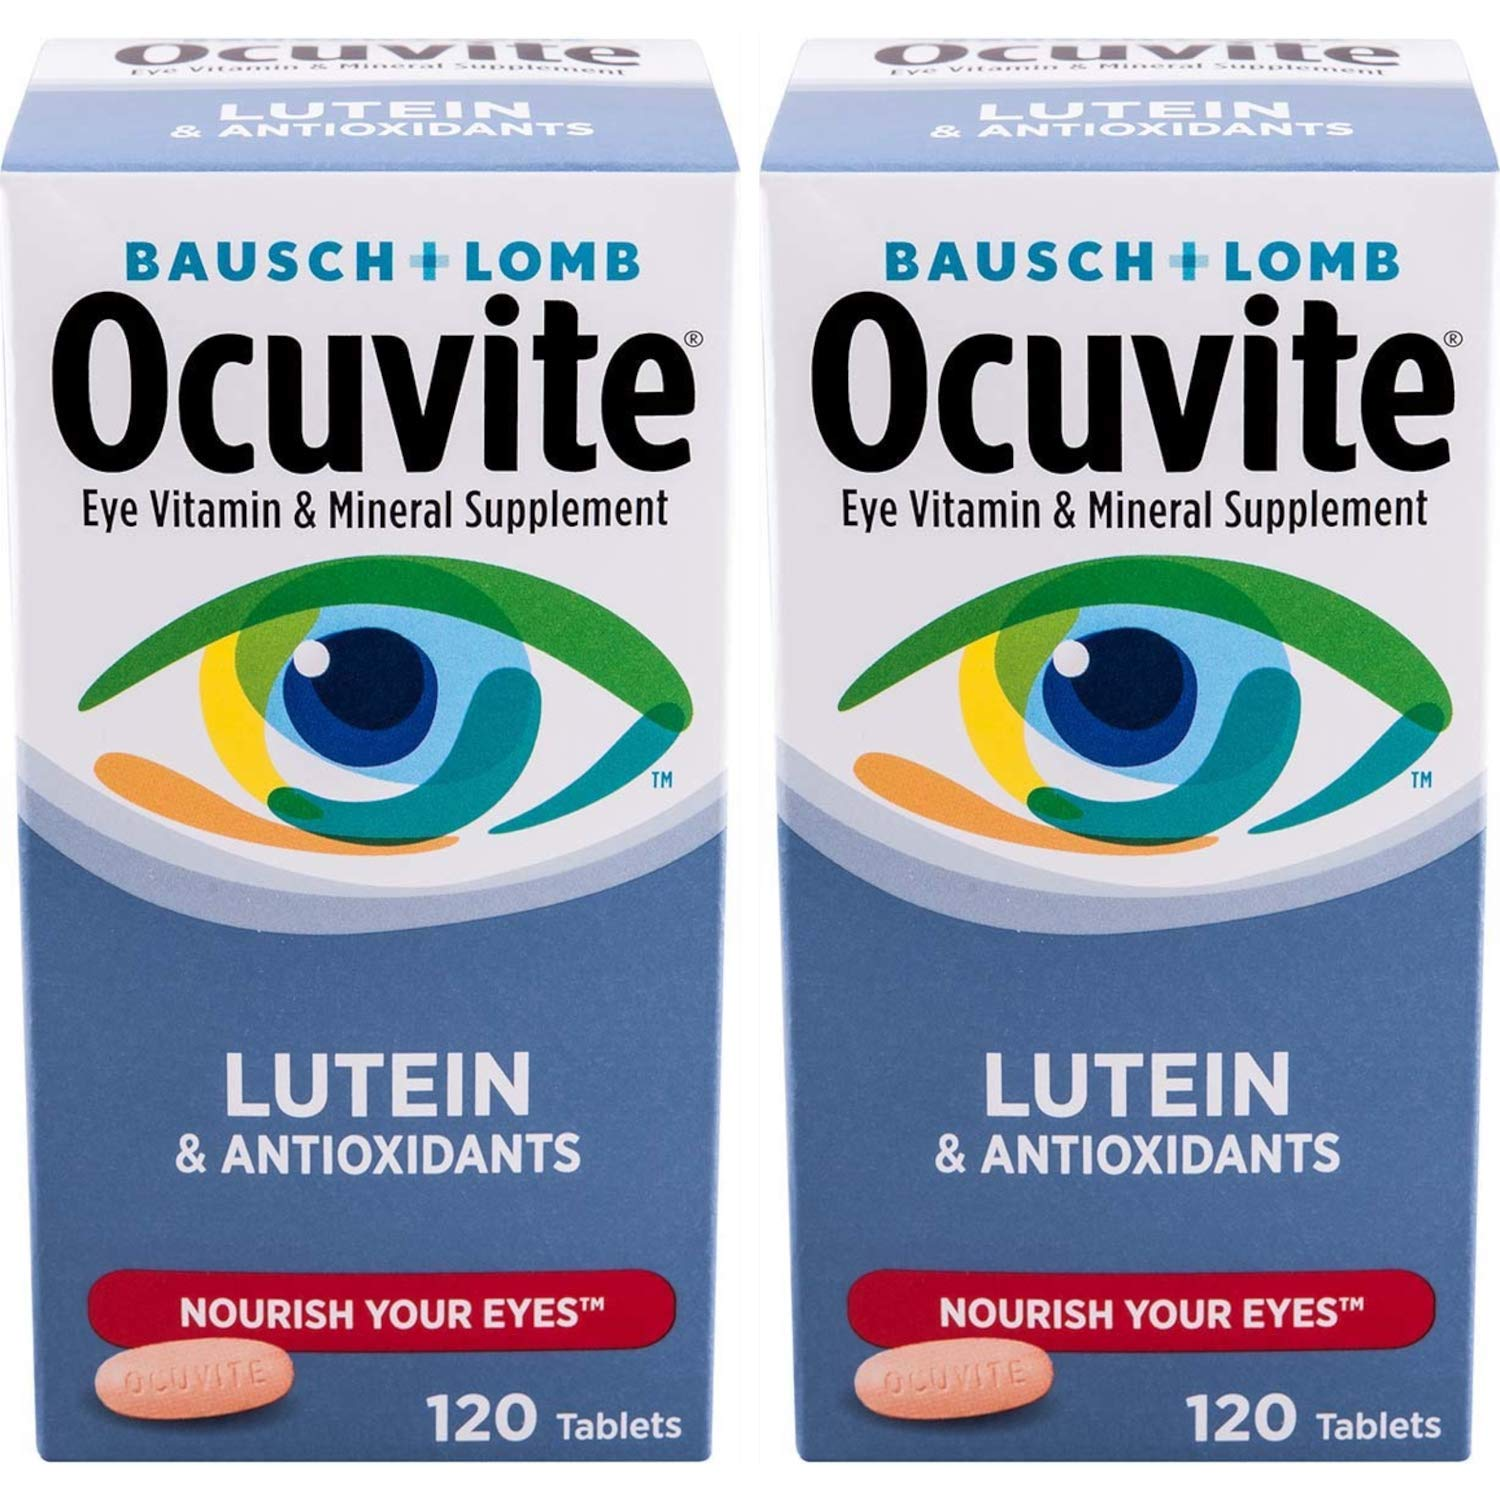 Bausch + Lomb Ocuvite Vitamin & Mineral Supplement Tablets with Lutein, 120 Count Bottle (Pack of 2) by Bausch & Lomb